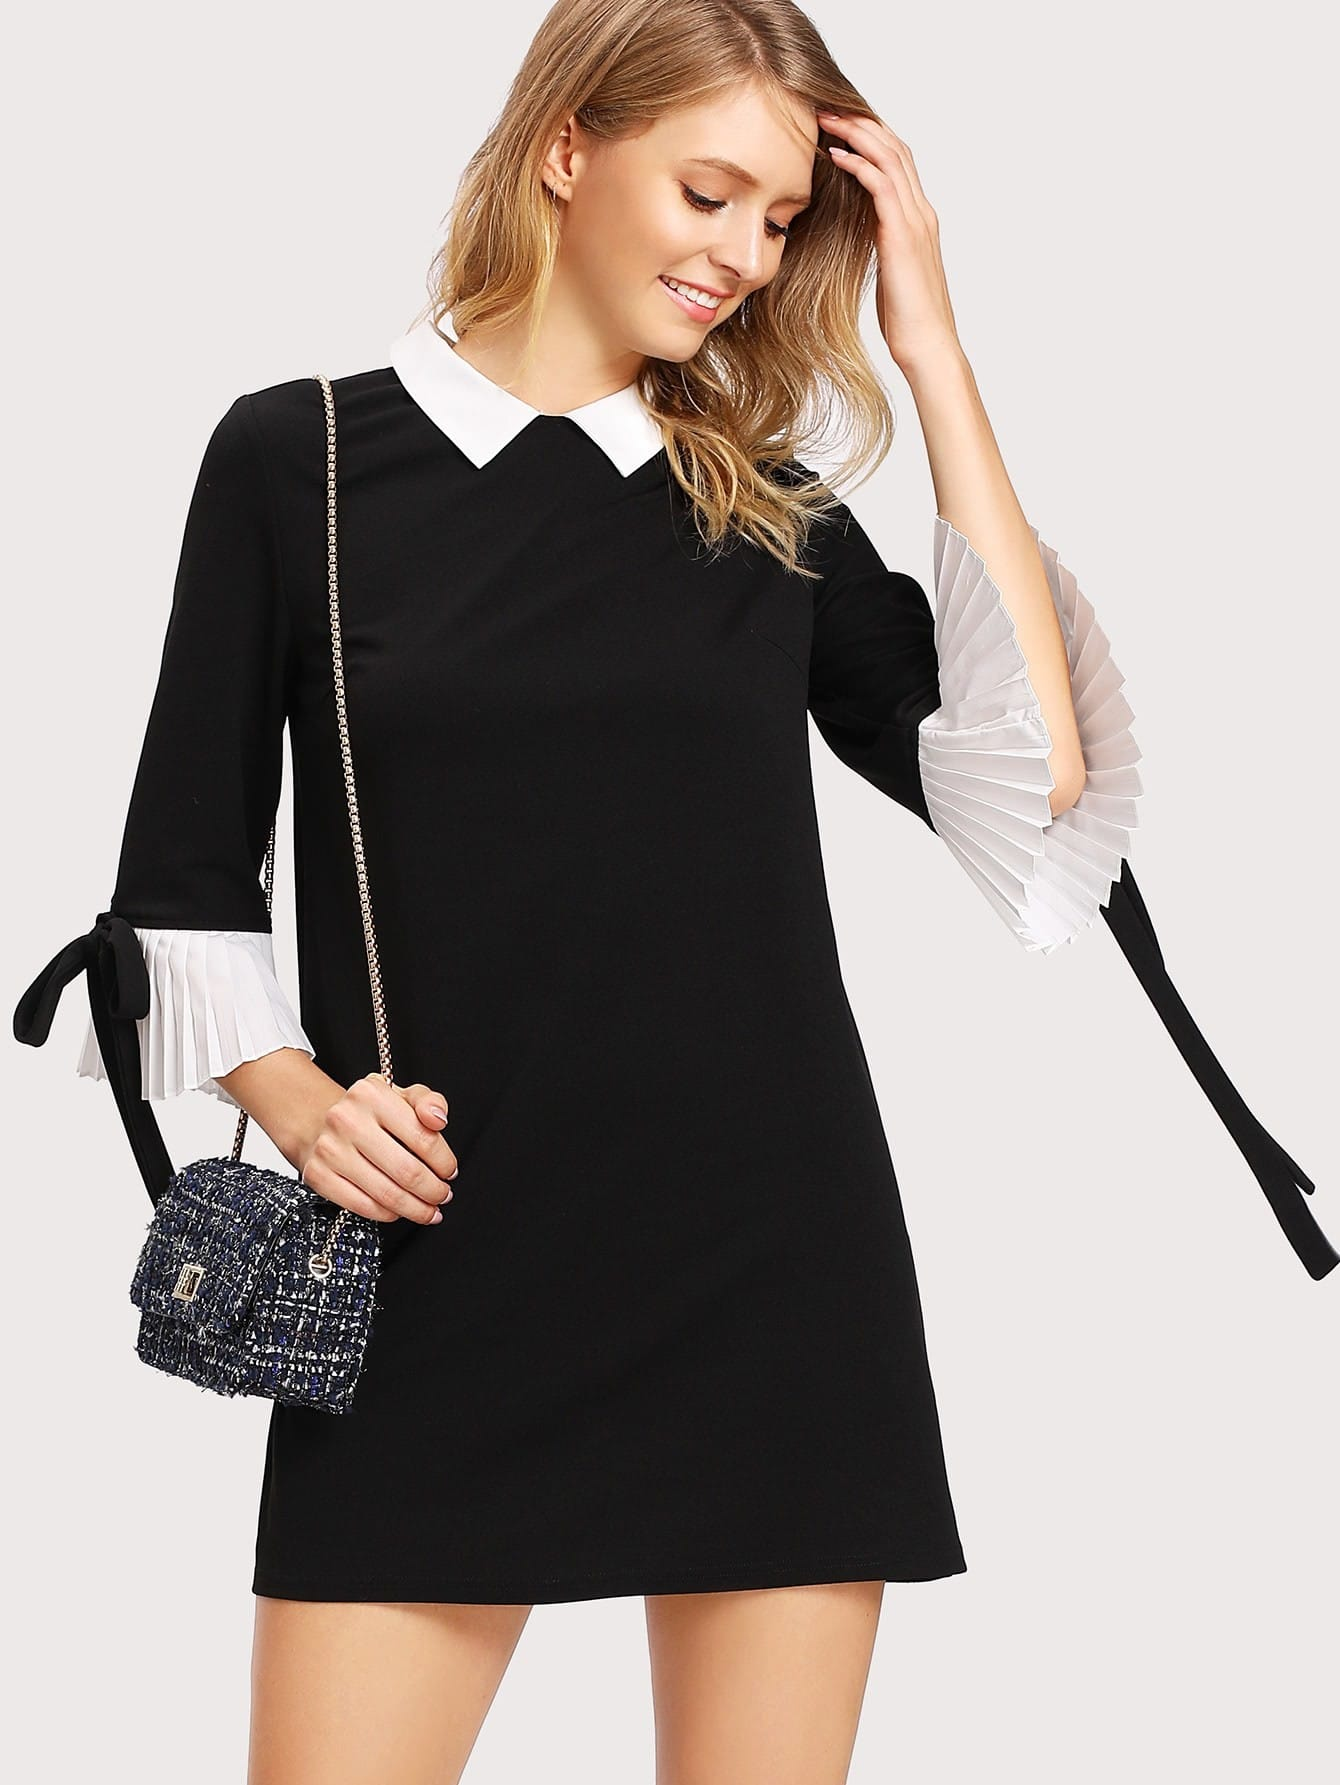 Contrast Collar And Pleated Cuff Dress lace collar and cuff tunic dress